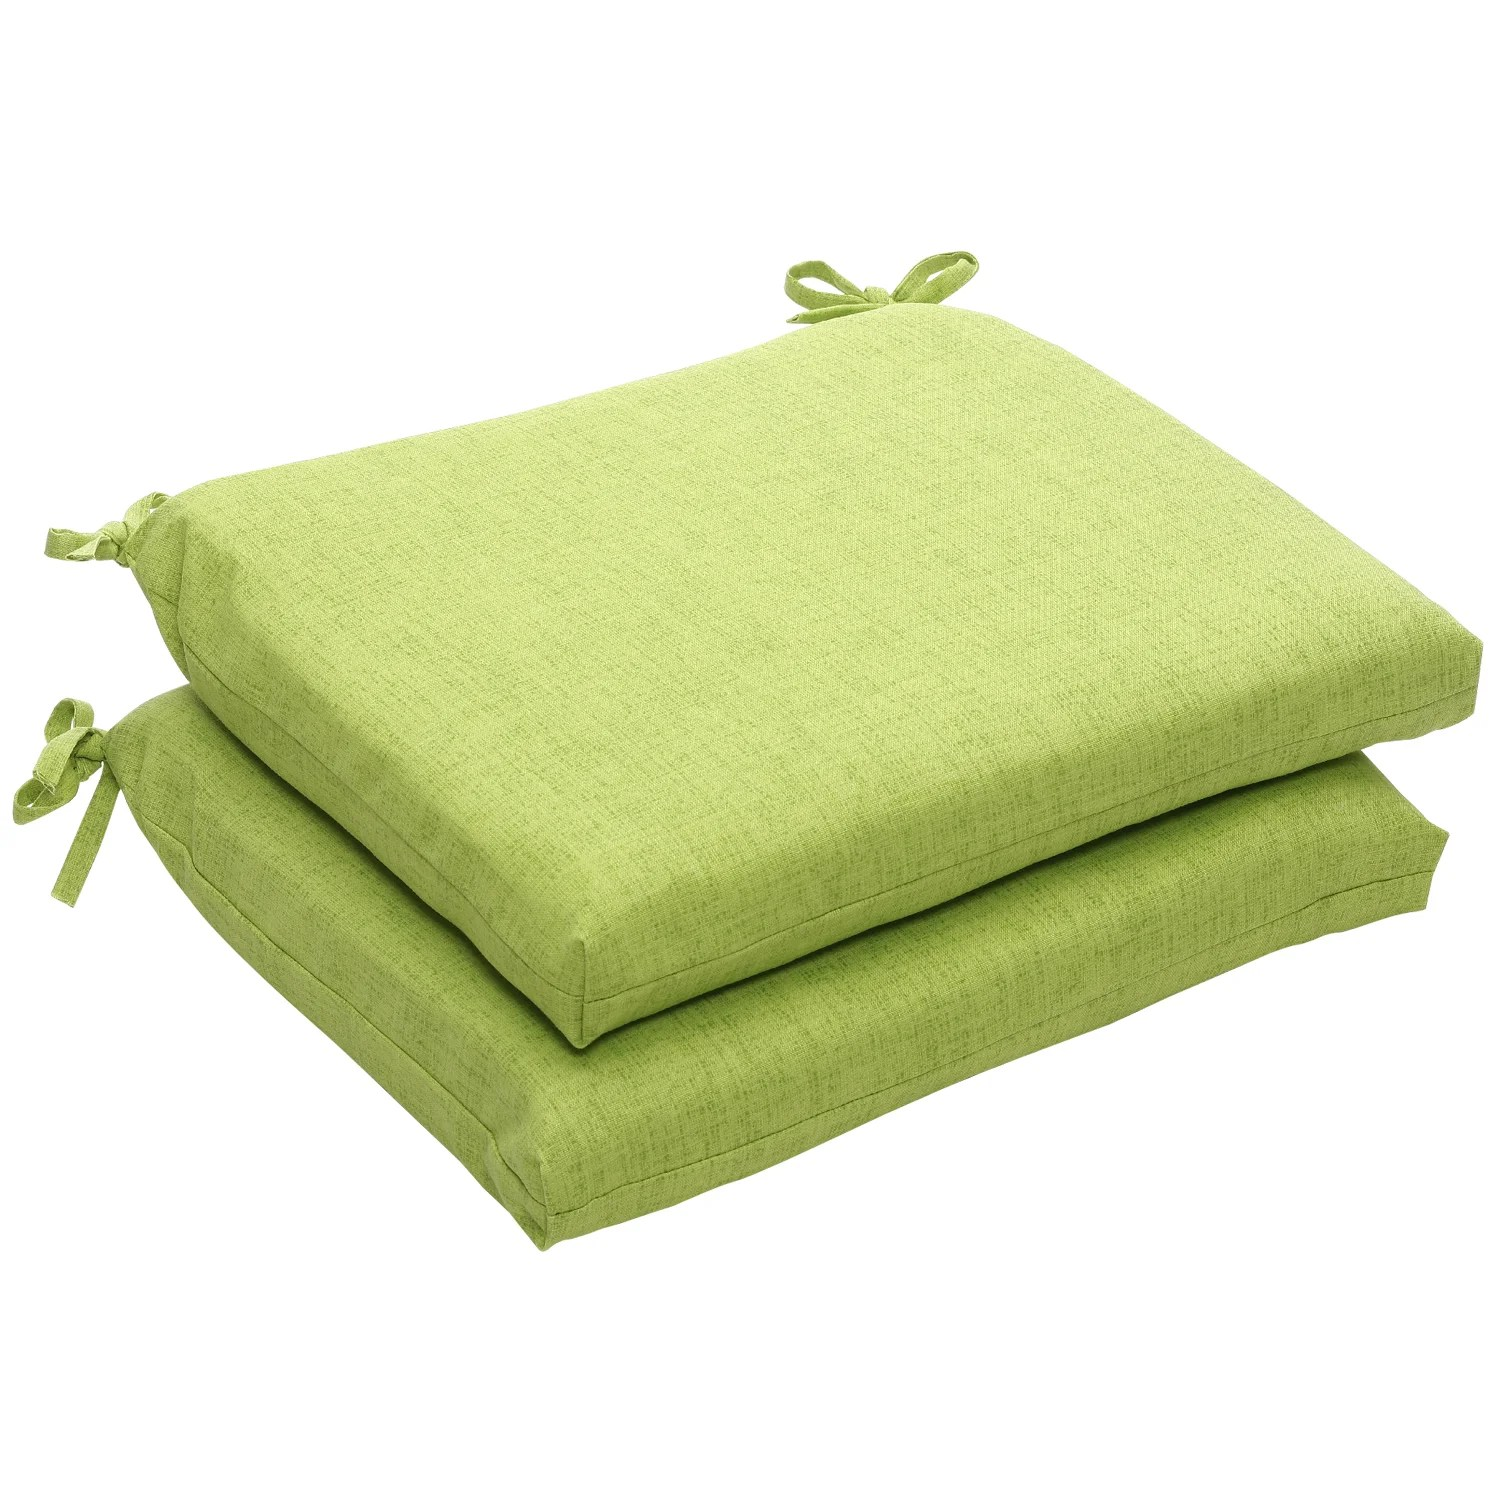 outdoor chair pads webbed lawn green textured solid squared seat cushions set of